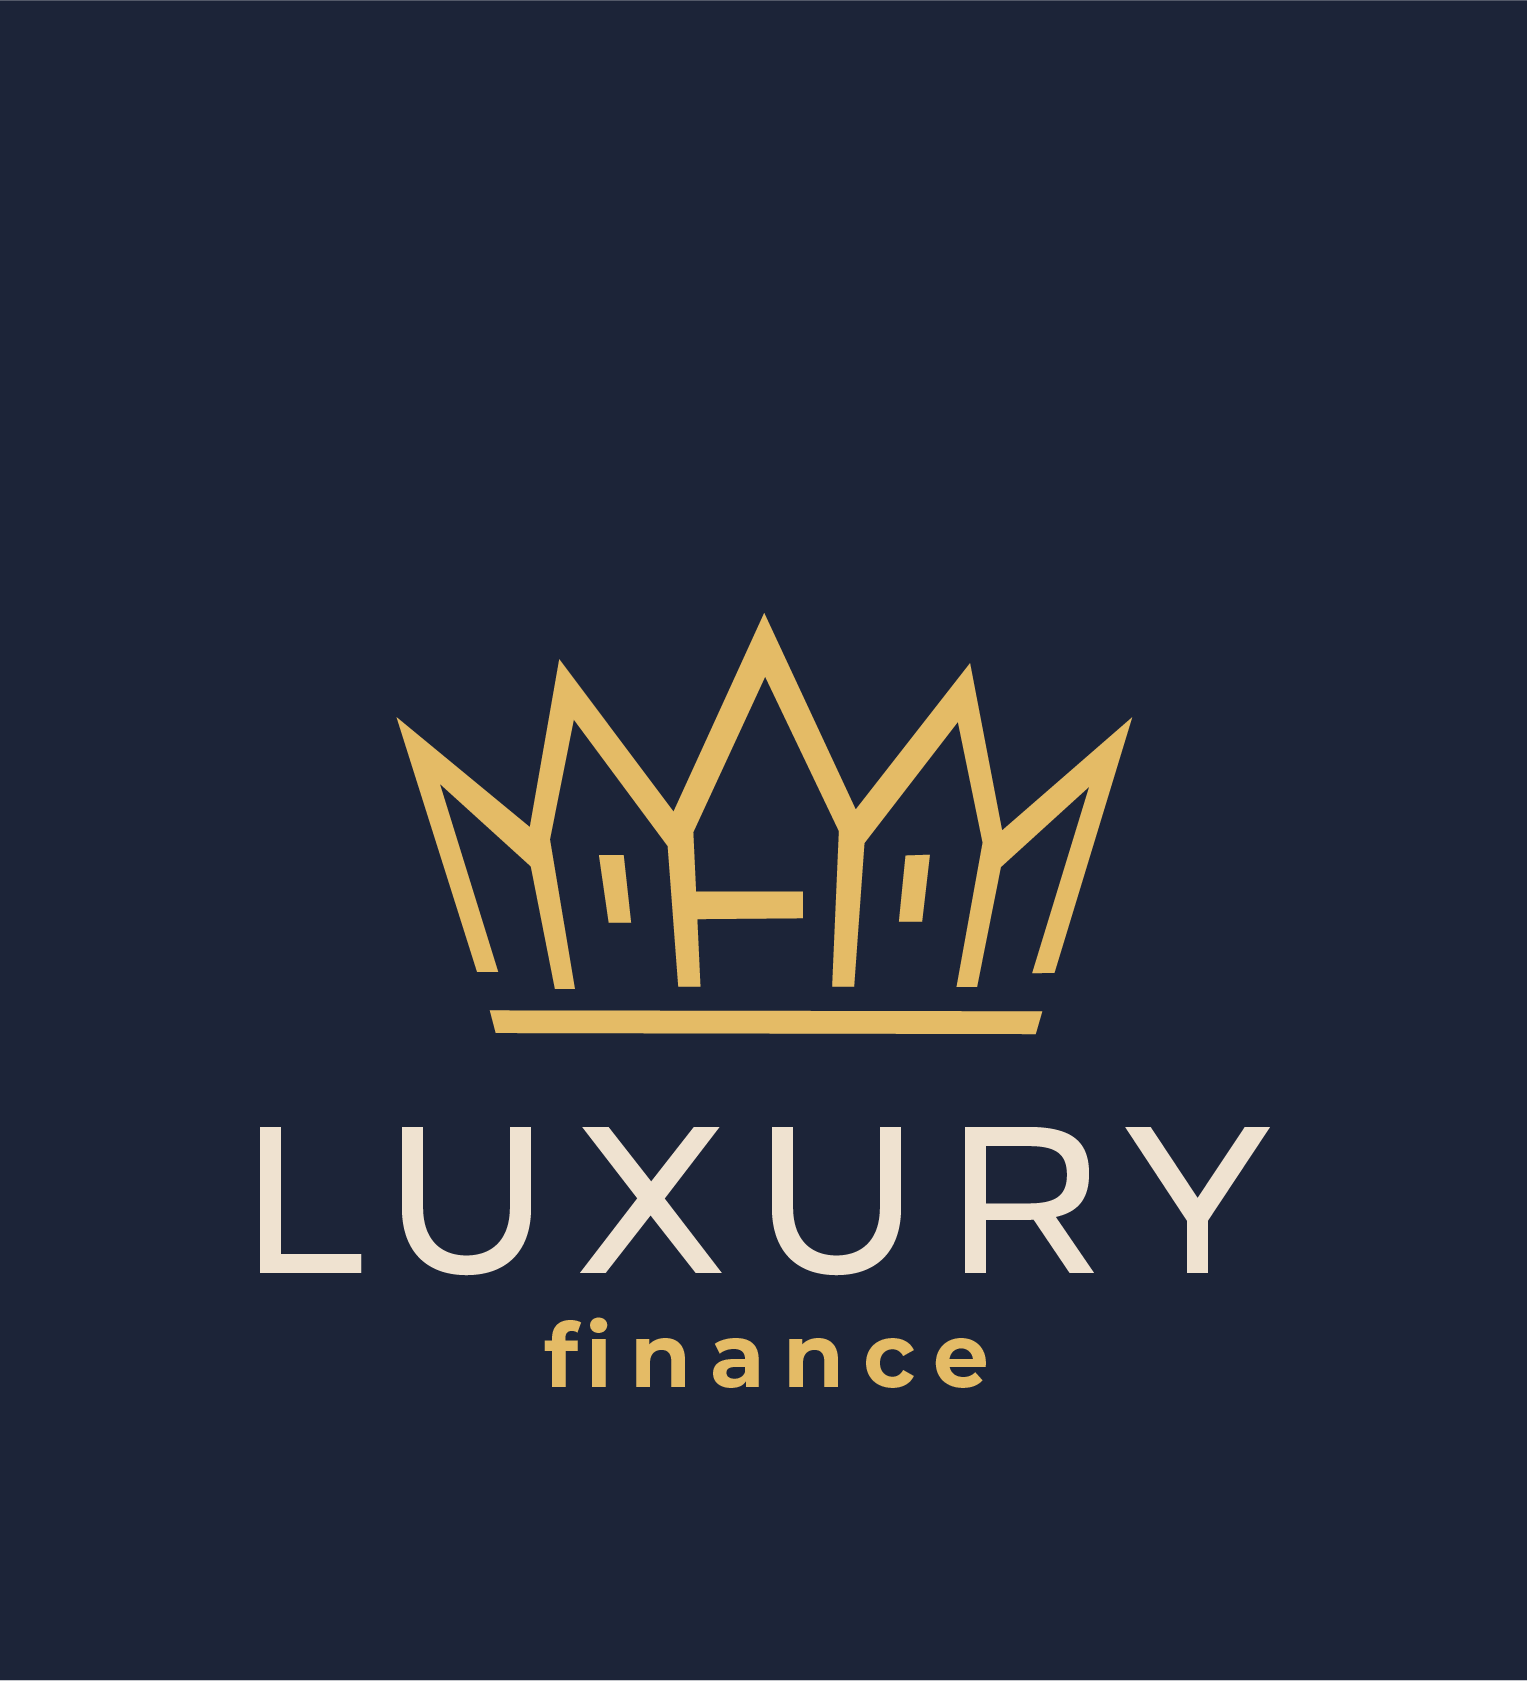 Luxury finance